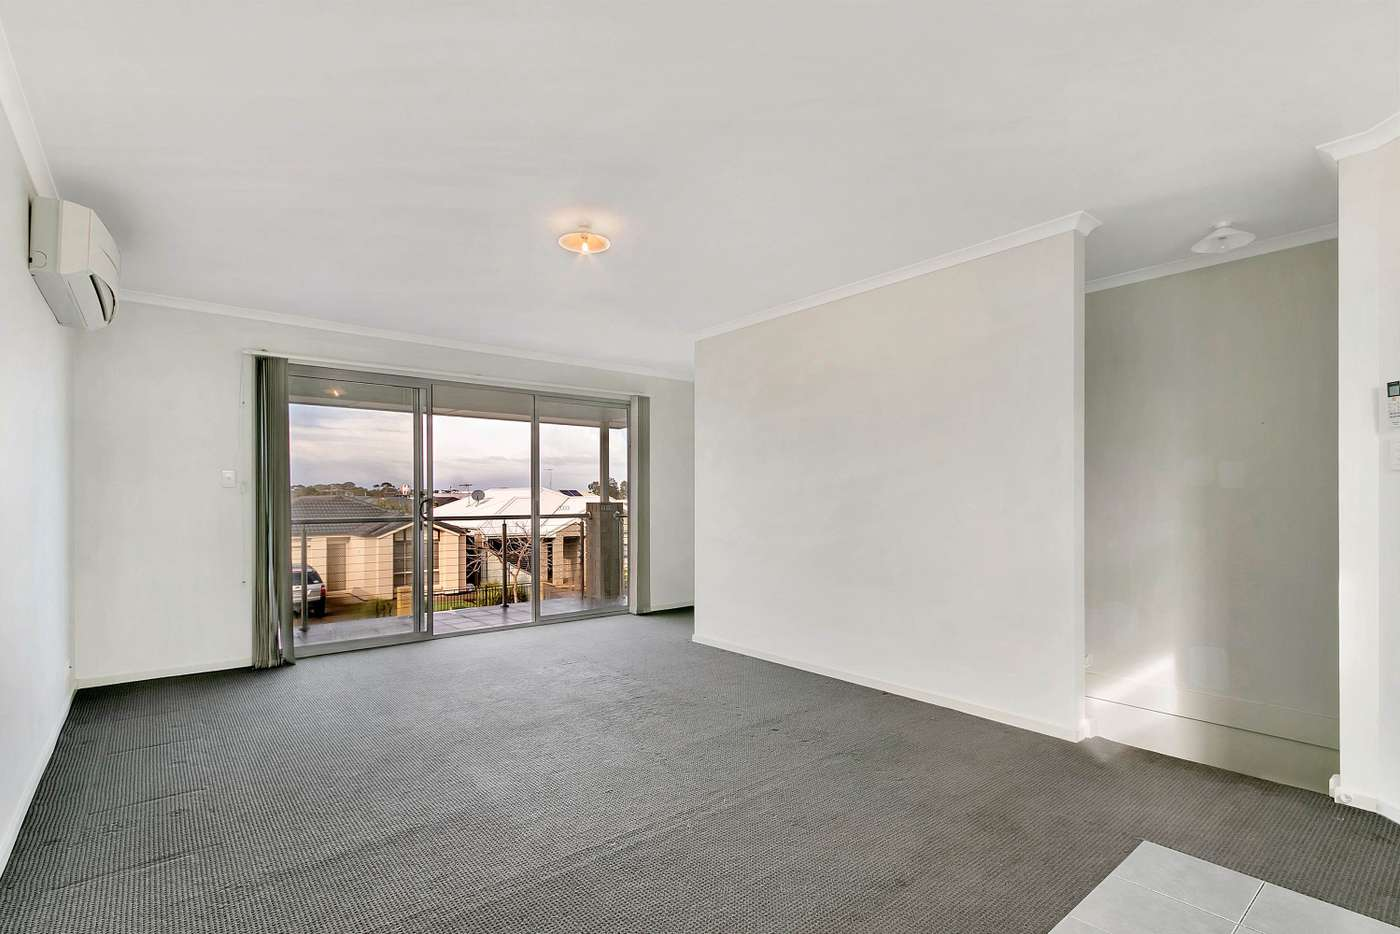 Fifth view of Homely house listing, 29 Centenary Circuit, Andrews Farm SA 5114